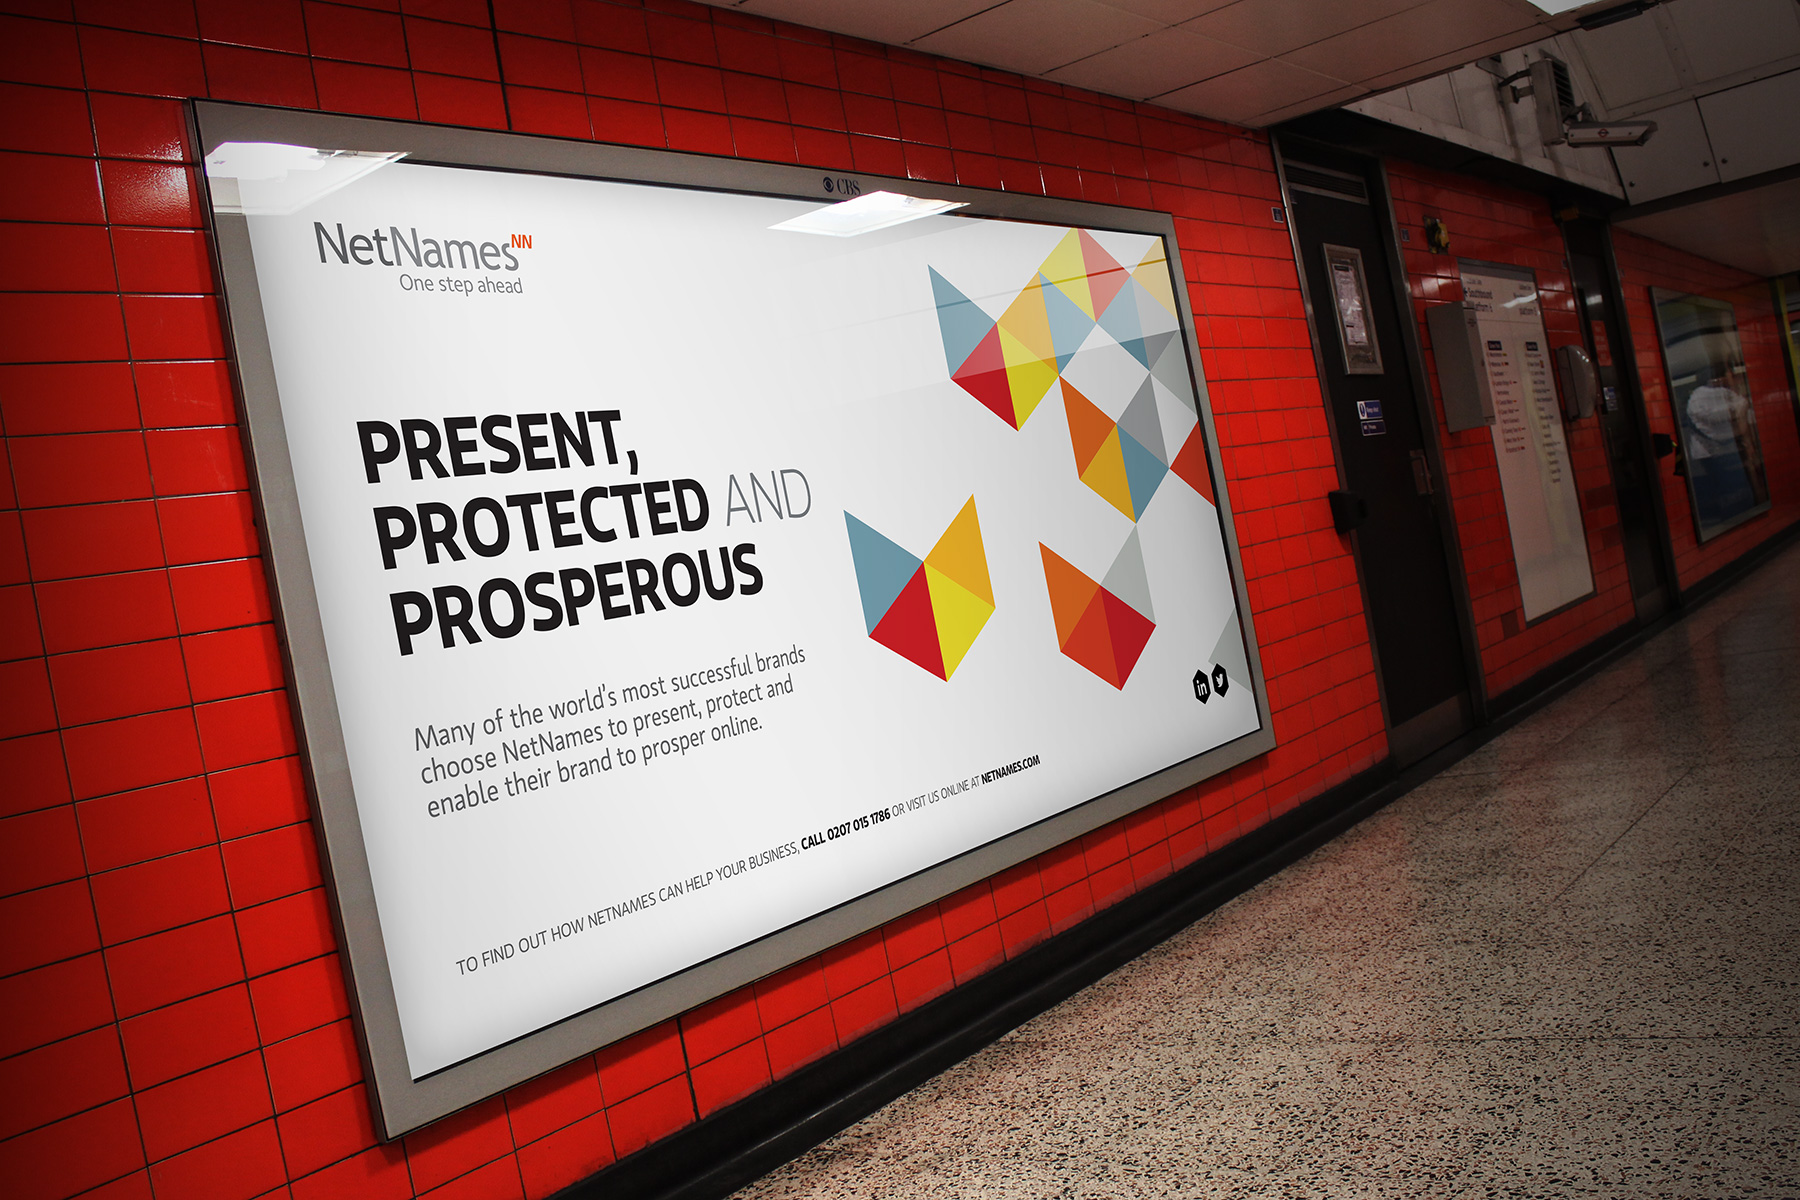 The resulting brand identity enabled NetNames to create brand stories using unique and quirky iconography which linked to positioning statements.